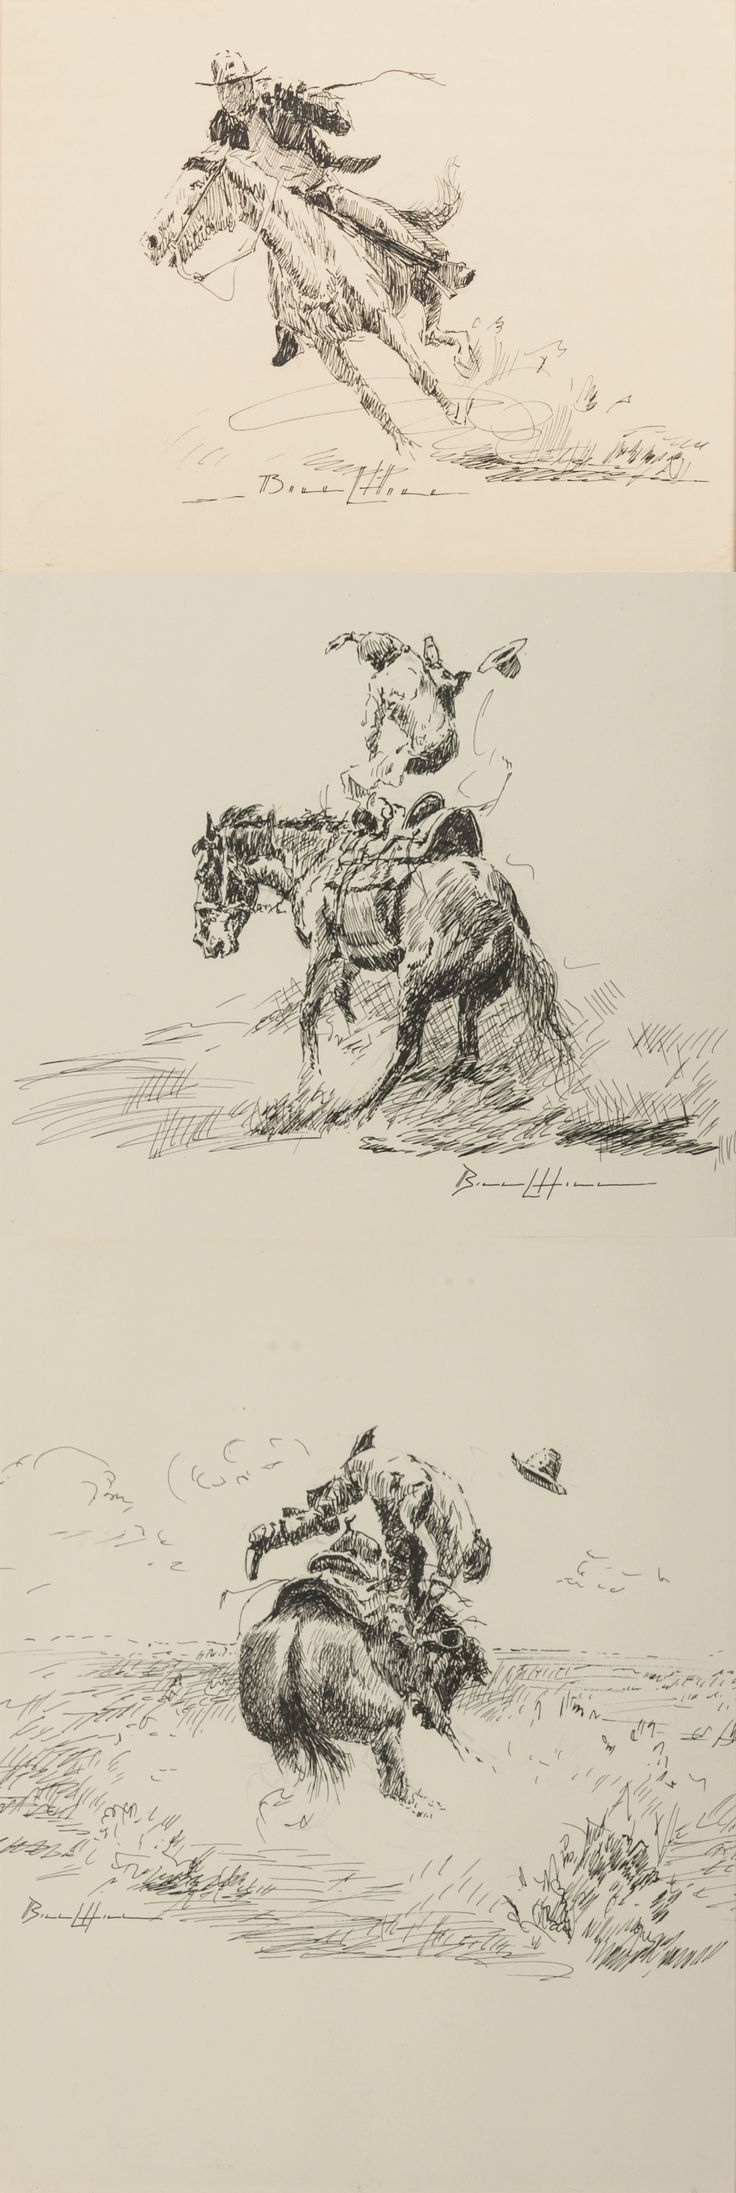 """William Hill (1922 - 2009) Three pen and ink drawings of cowboy scenes by William Hill: 6 1/2"""" x 8 1/2"""", 8 1/4"""" x 6 1/4"""" and 9"""" x 6 1/2"""" Each signed BILL L HILL, and all are framed."""